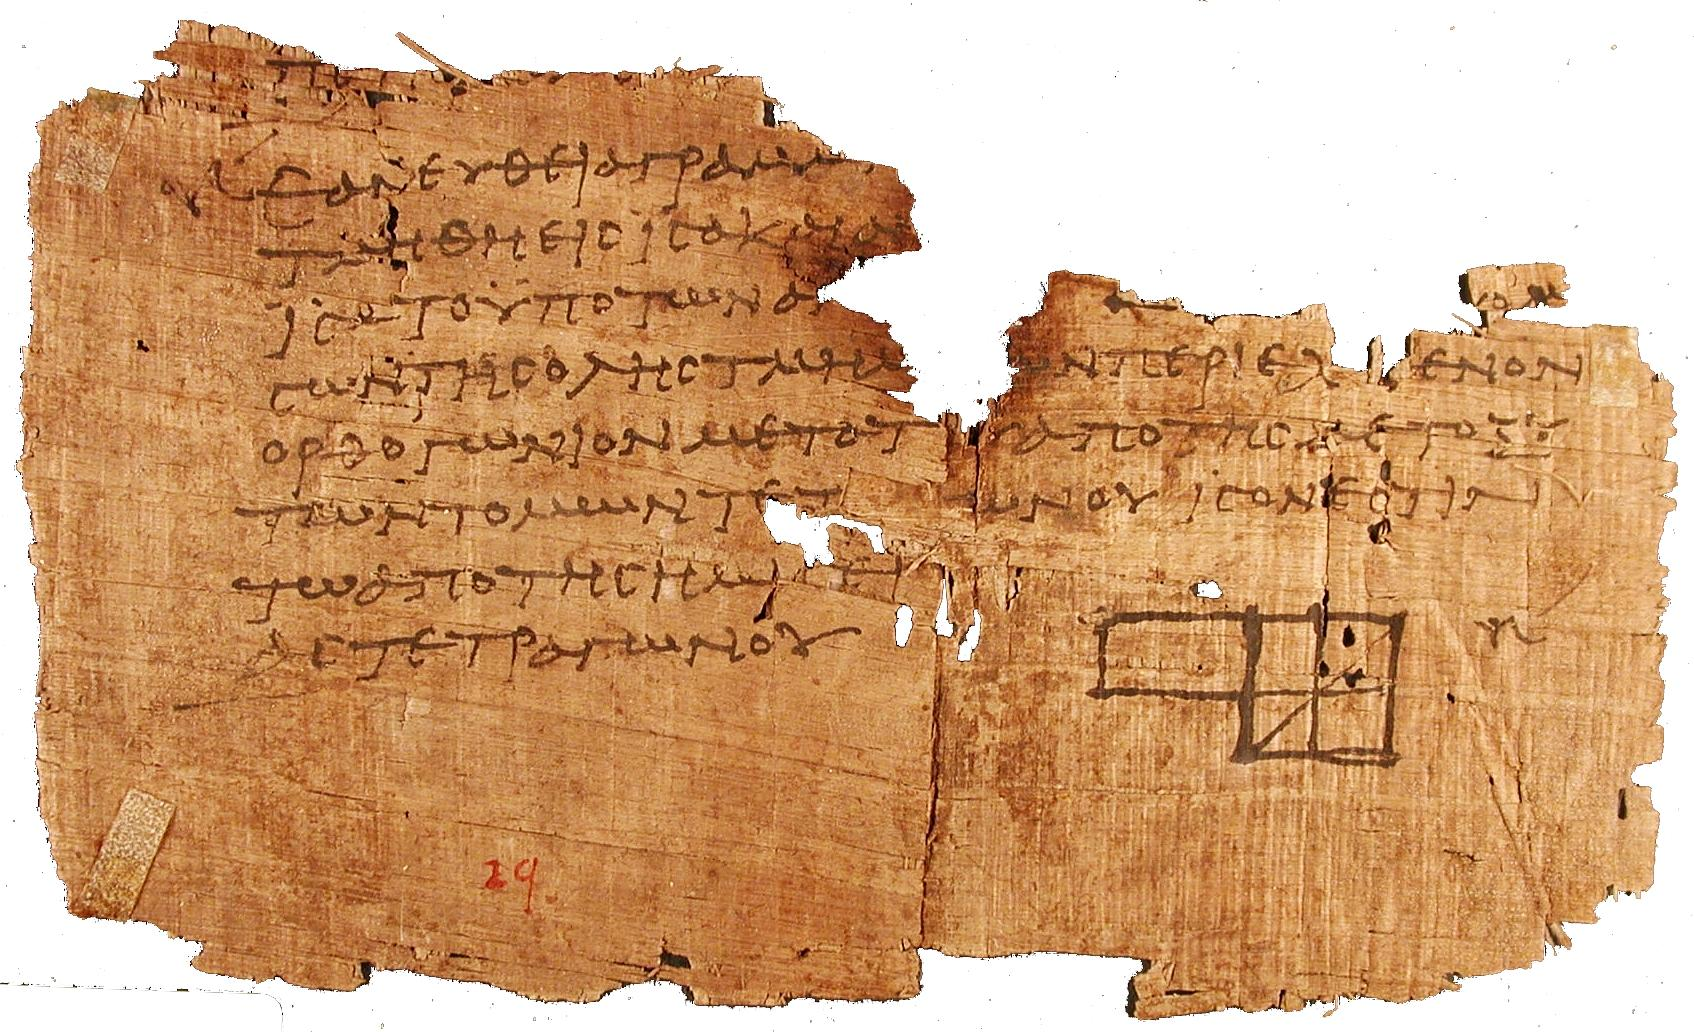 A fragment of Euclid's Elements: from the Oxyrhynchus Papyri, excavated from an ancient Egyptian rubbish dump!